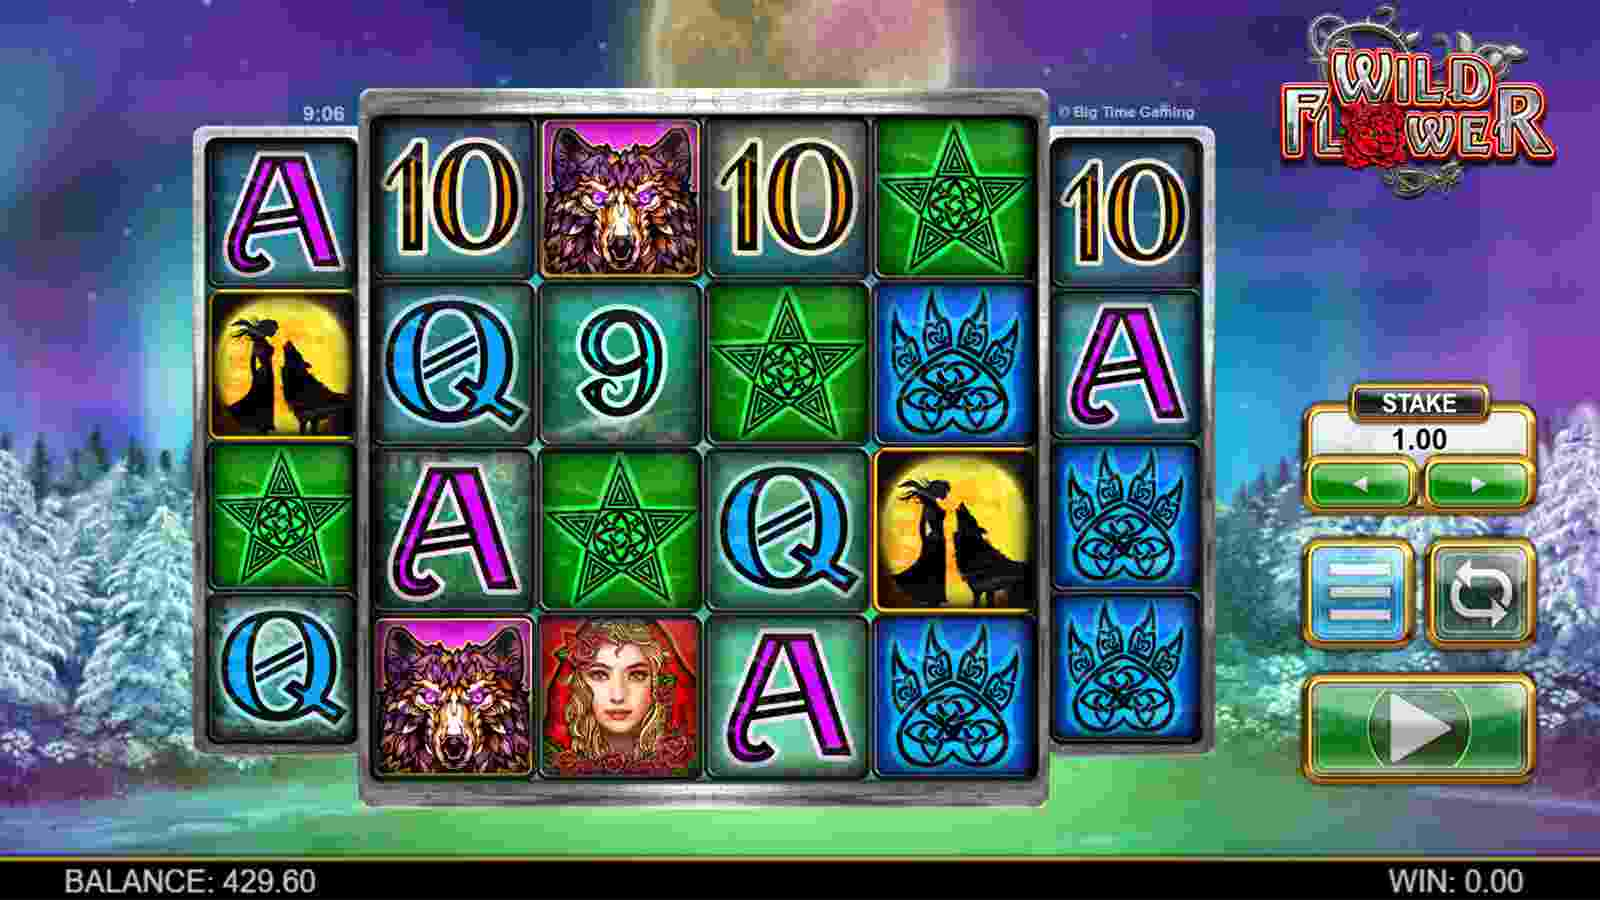 Wild Flower Slot The Base Game and Features